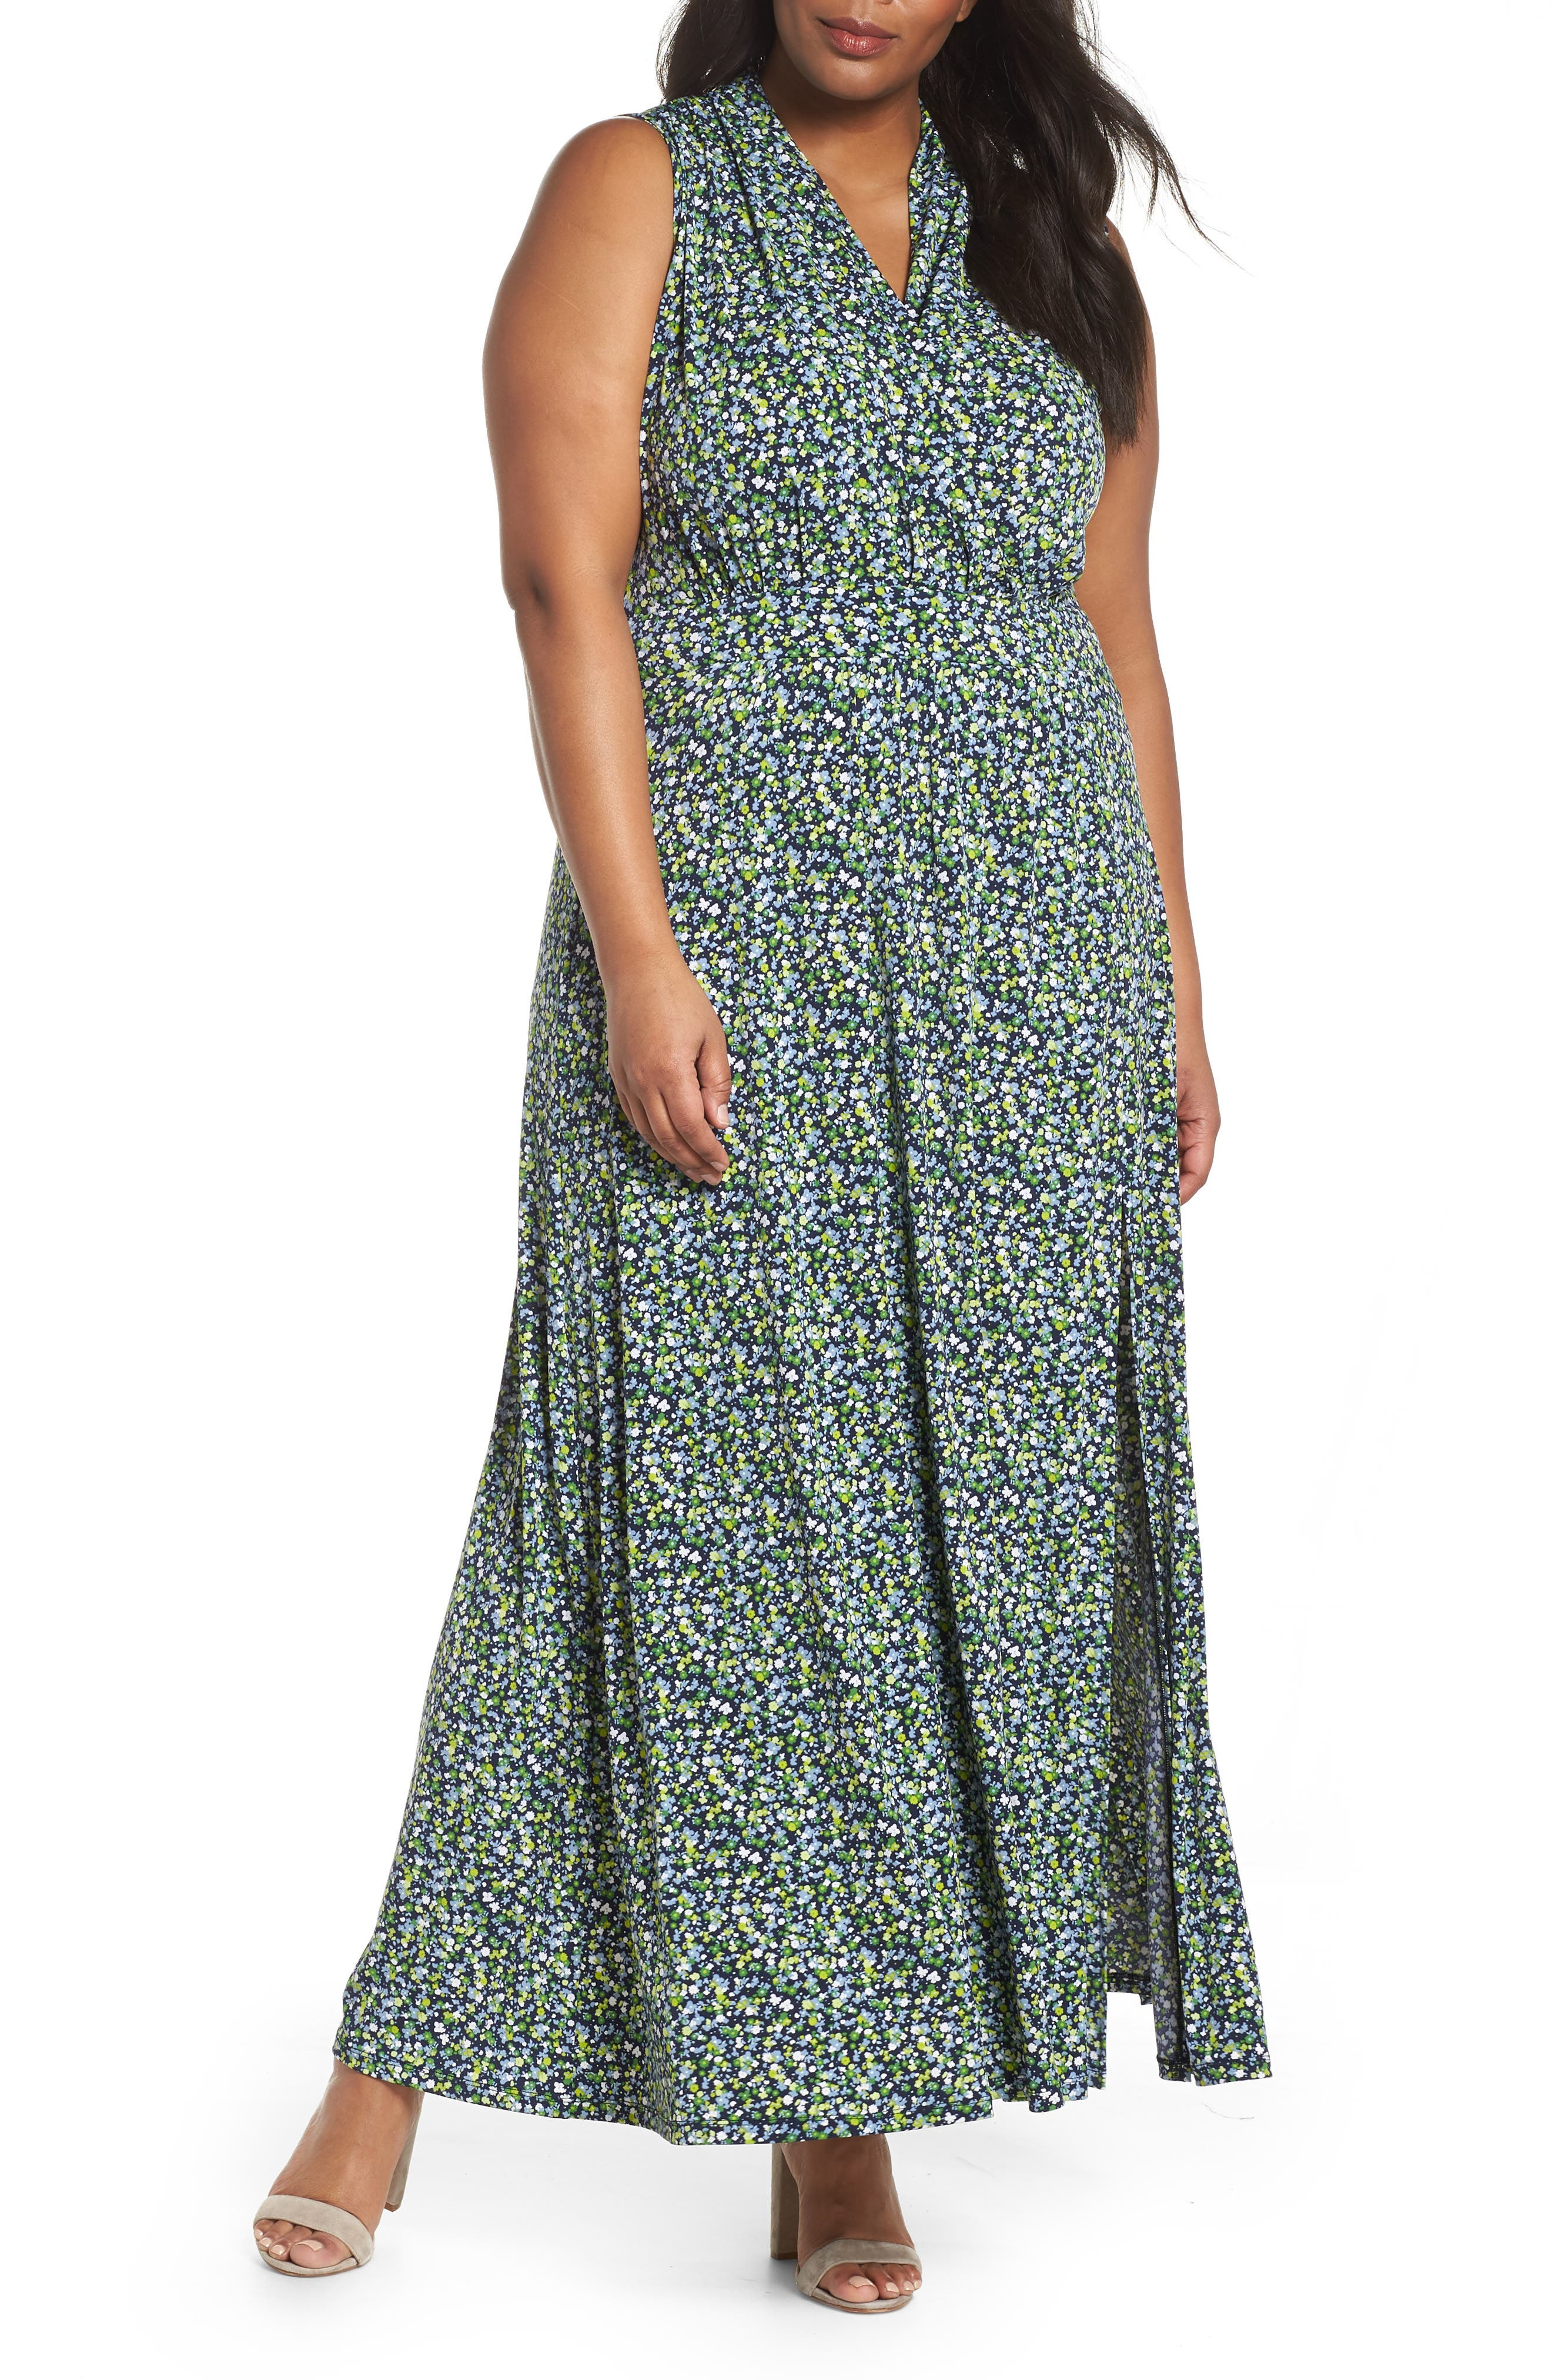 Wildflowers Maxi Dress,                         Main,                         color, 462